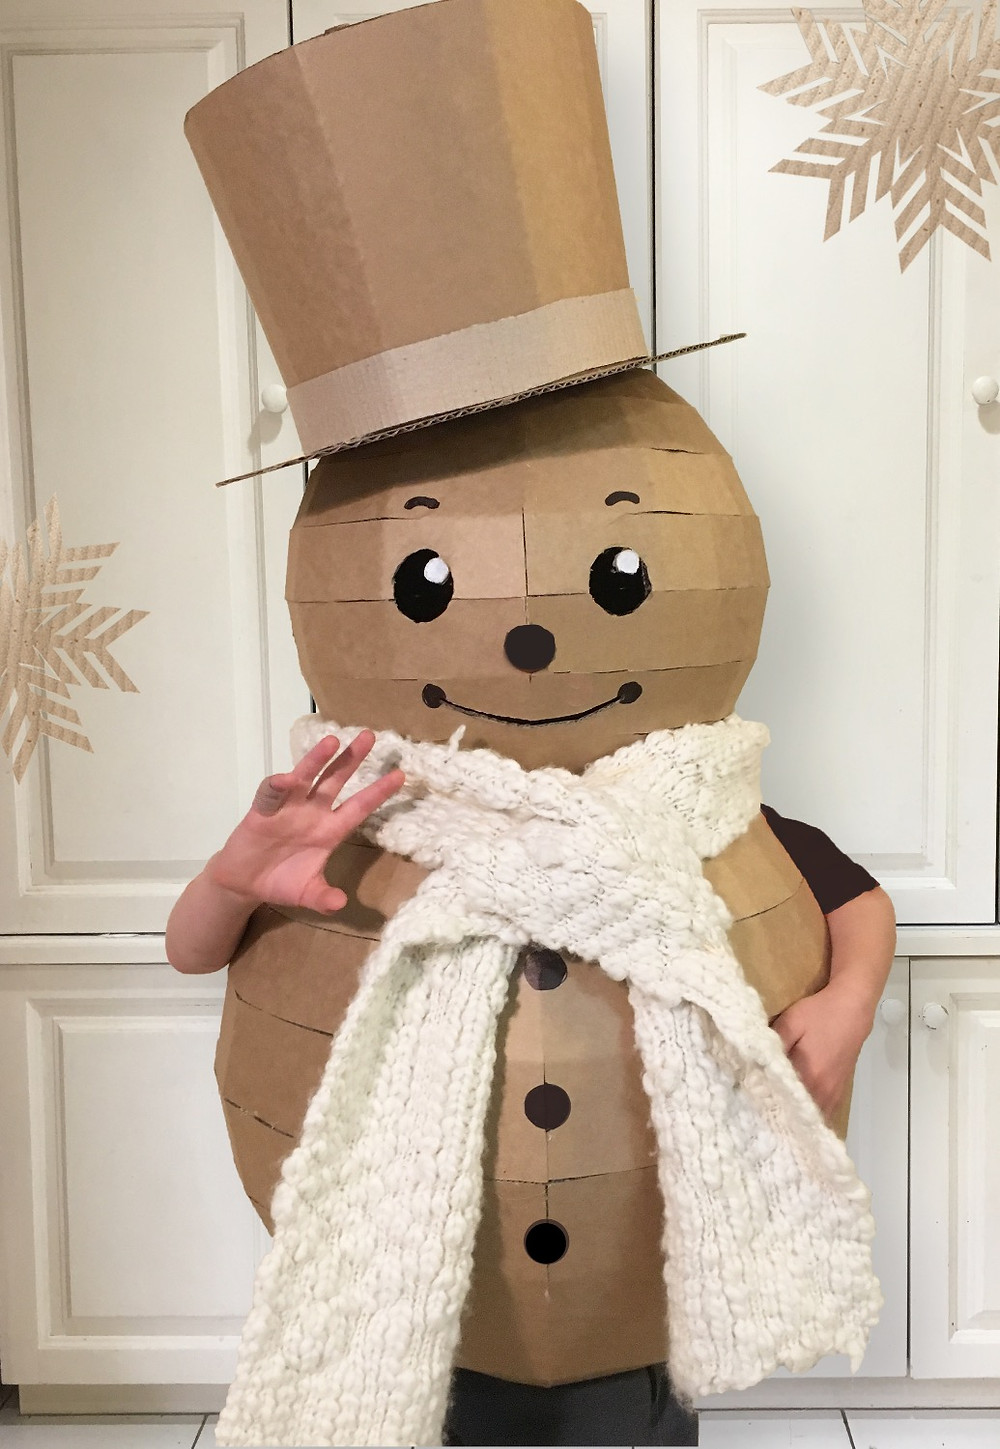 DIY Cardboard Snowman Costume by Zygote Brown Designs